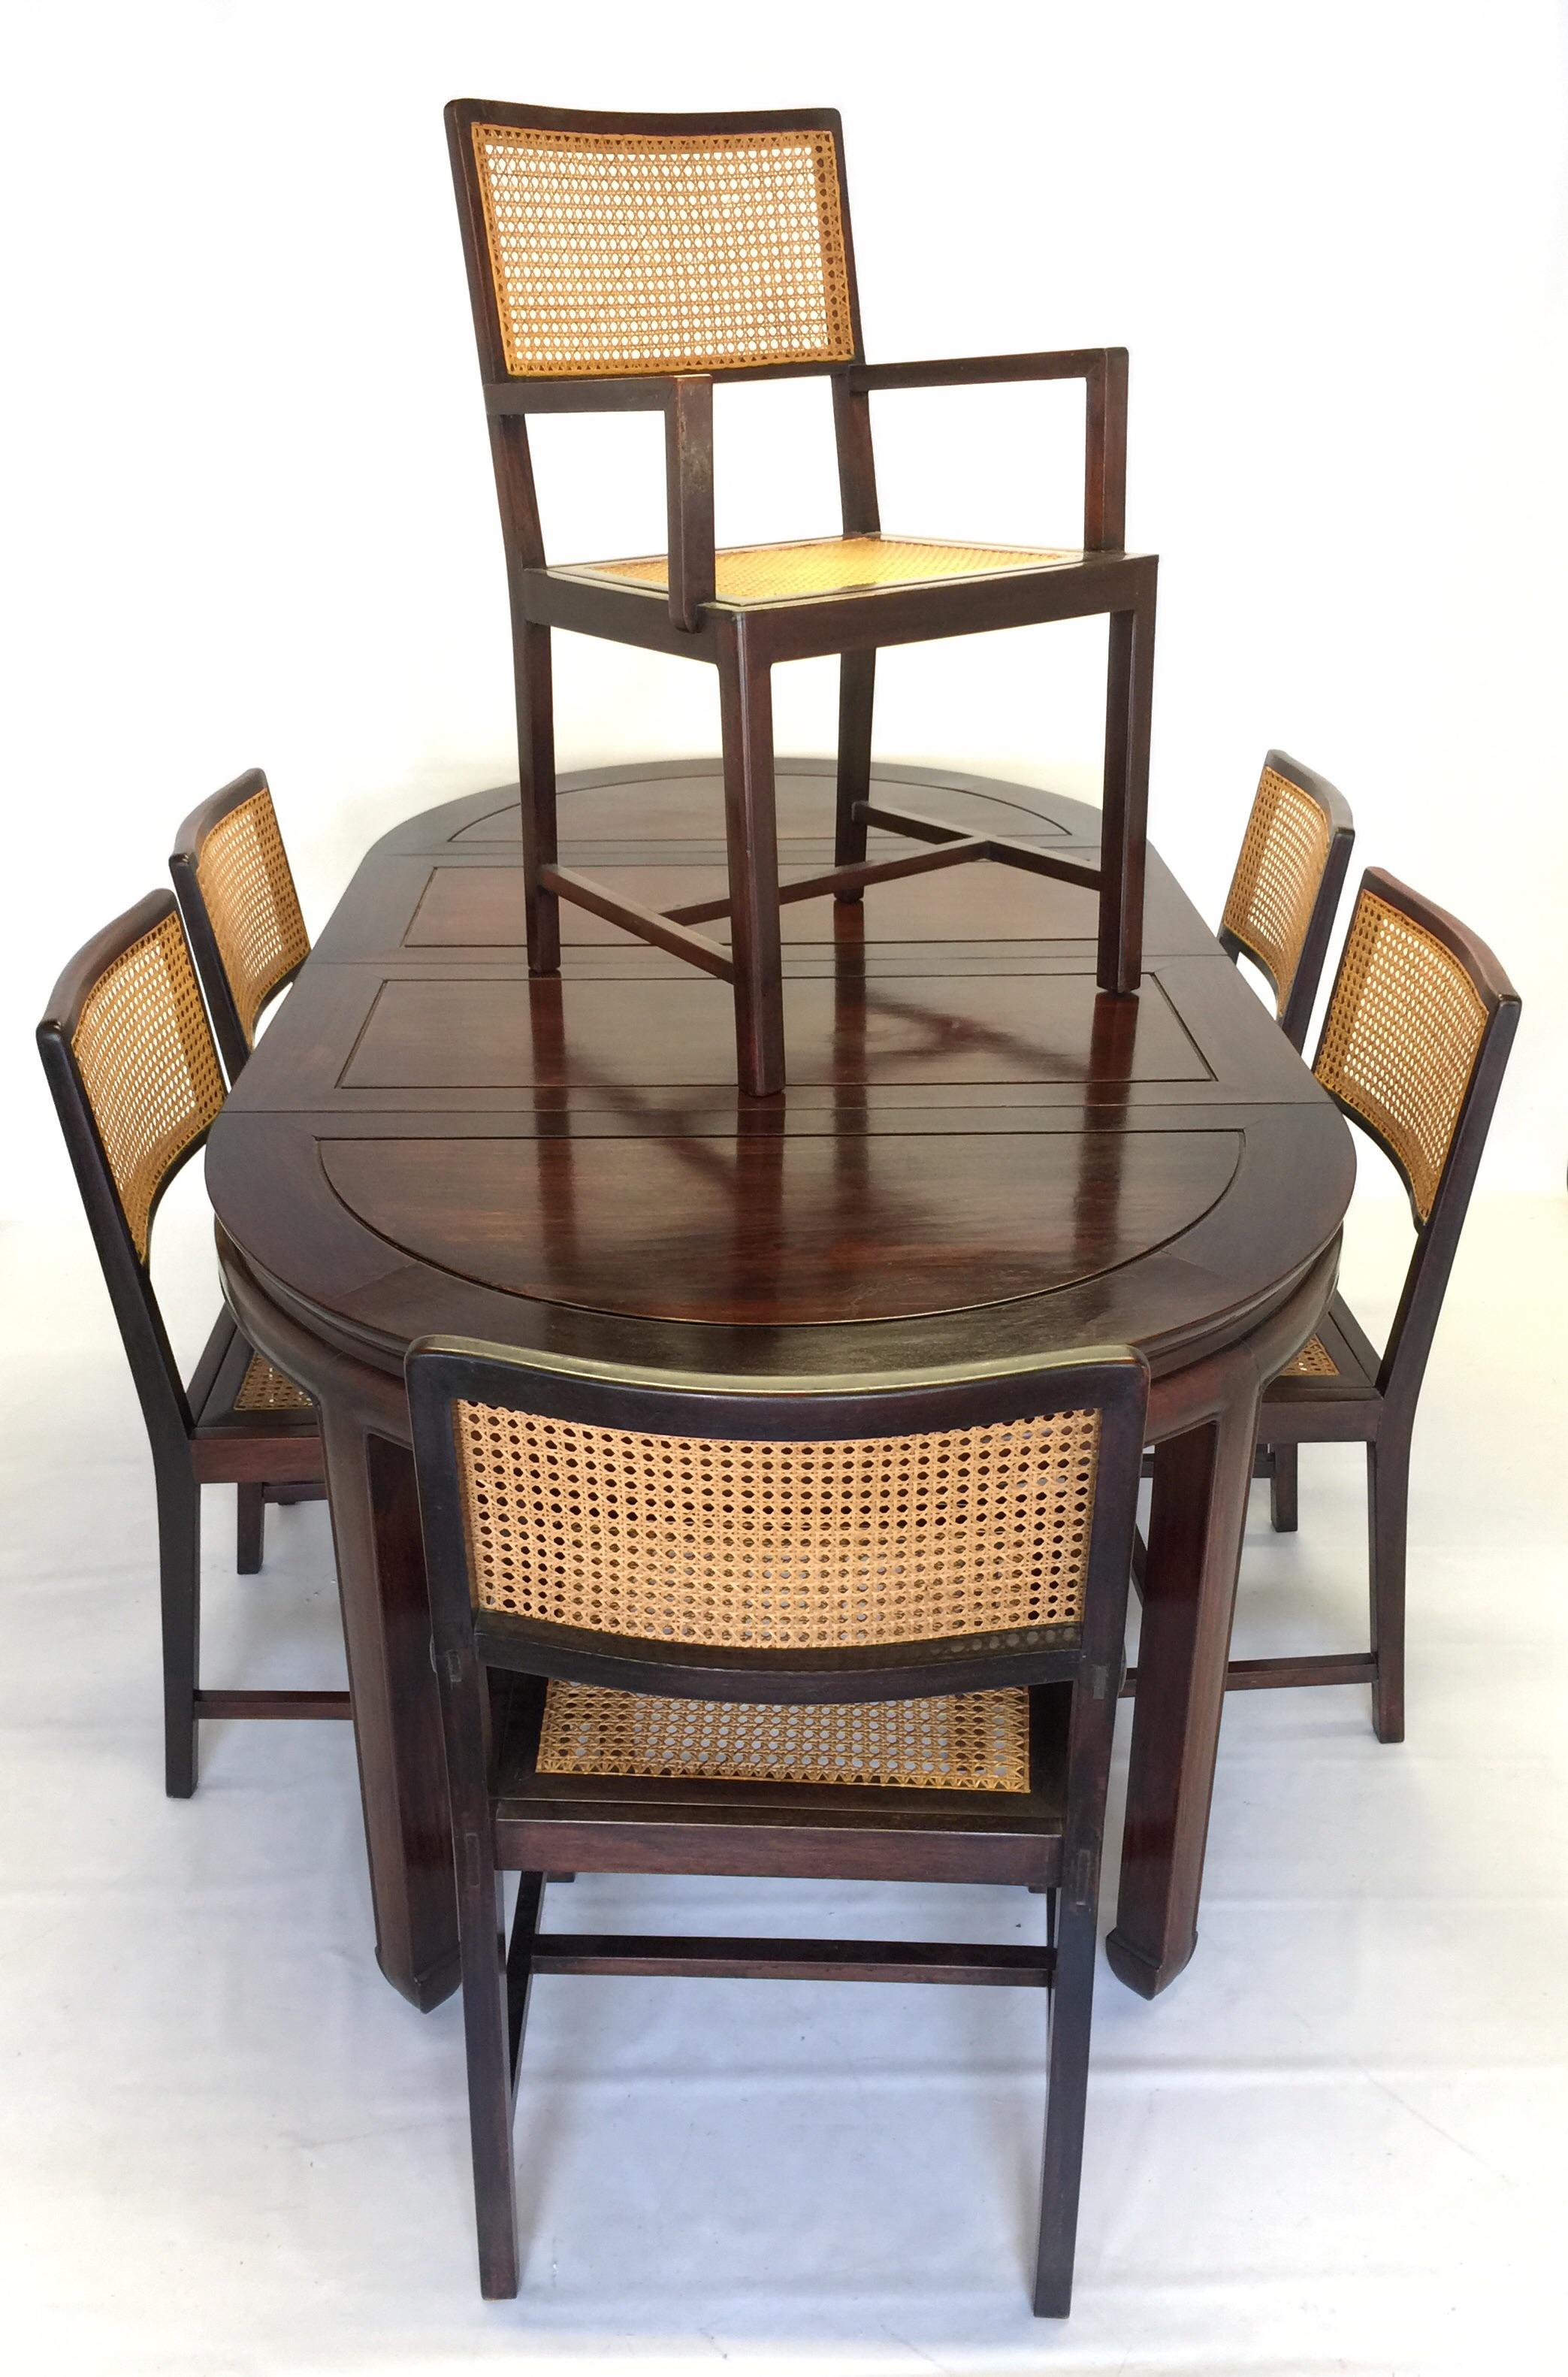 dining table and chairs hong kong old high chair parts set of 6 vintage rosewood mid century chairish for sale image 11